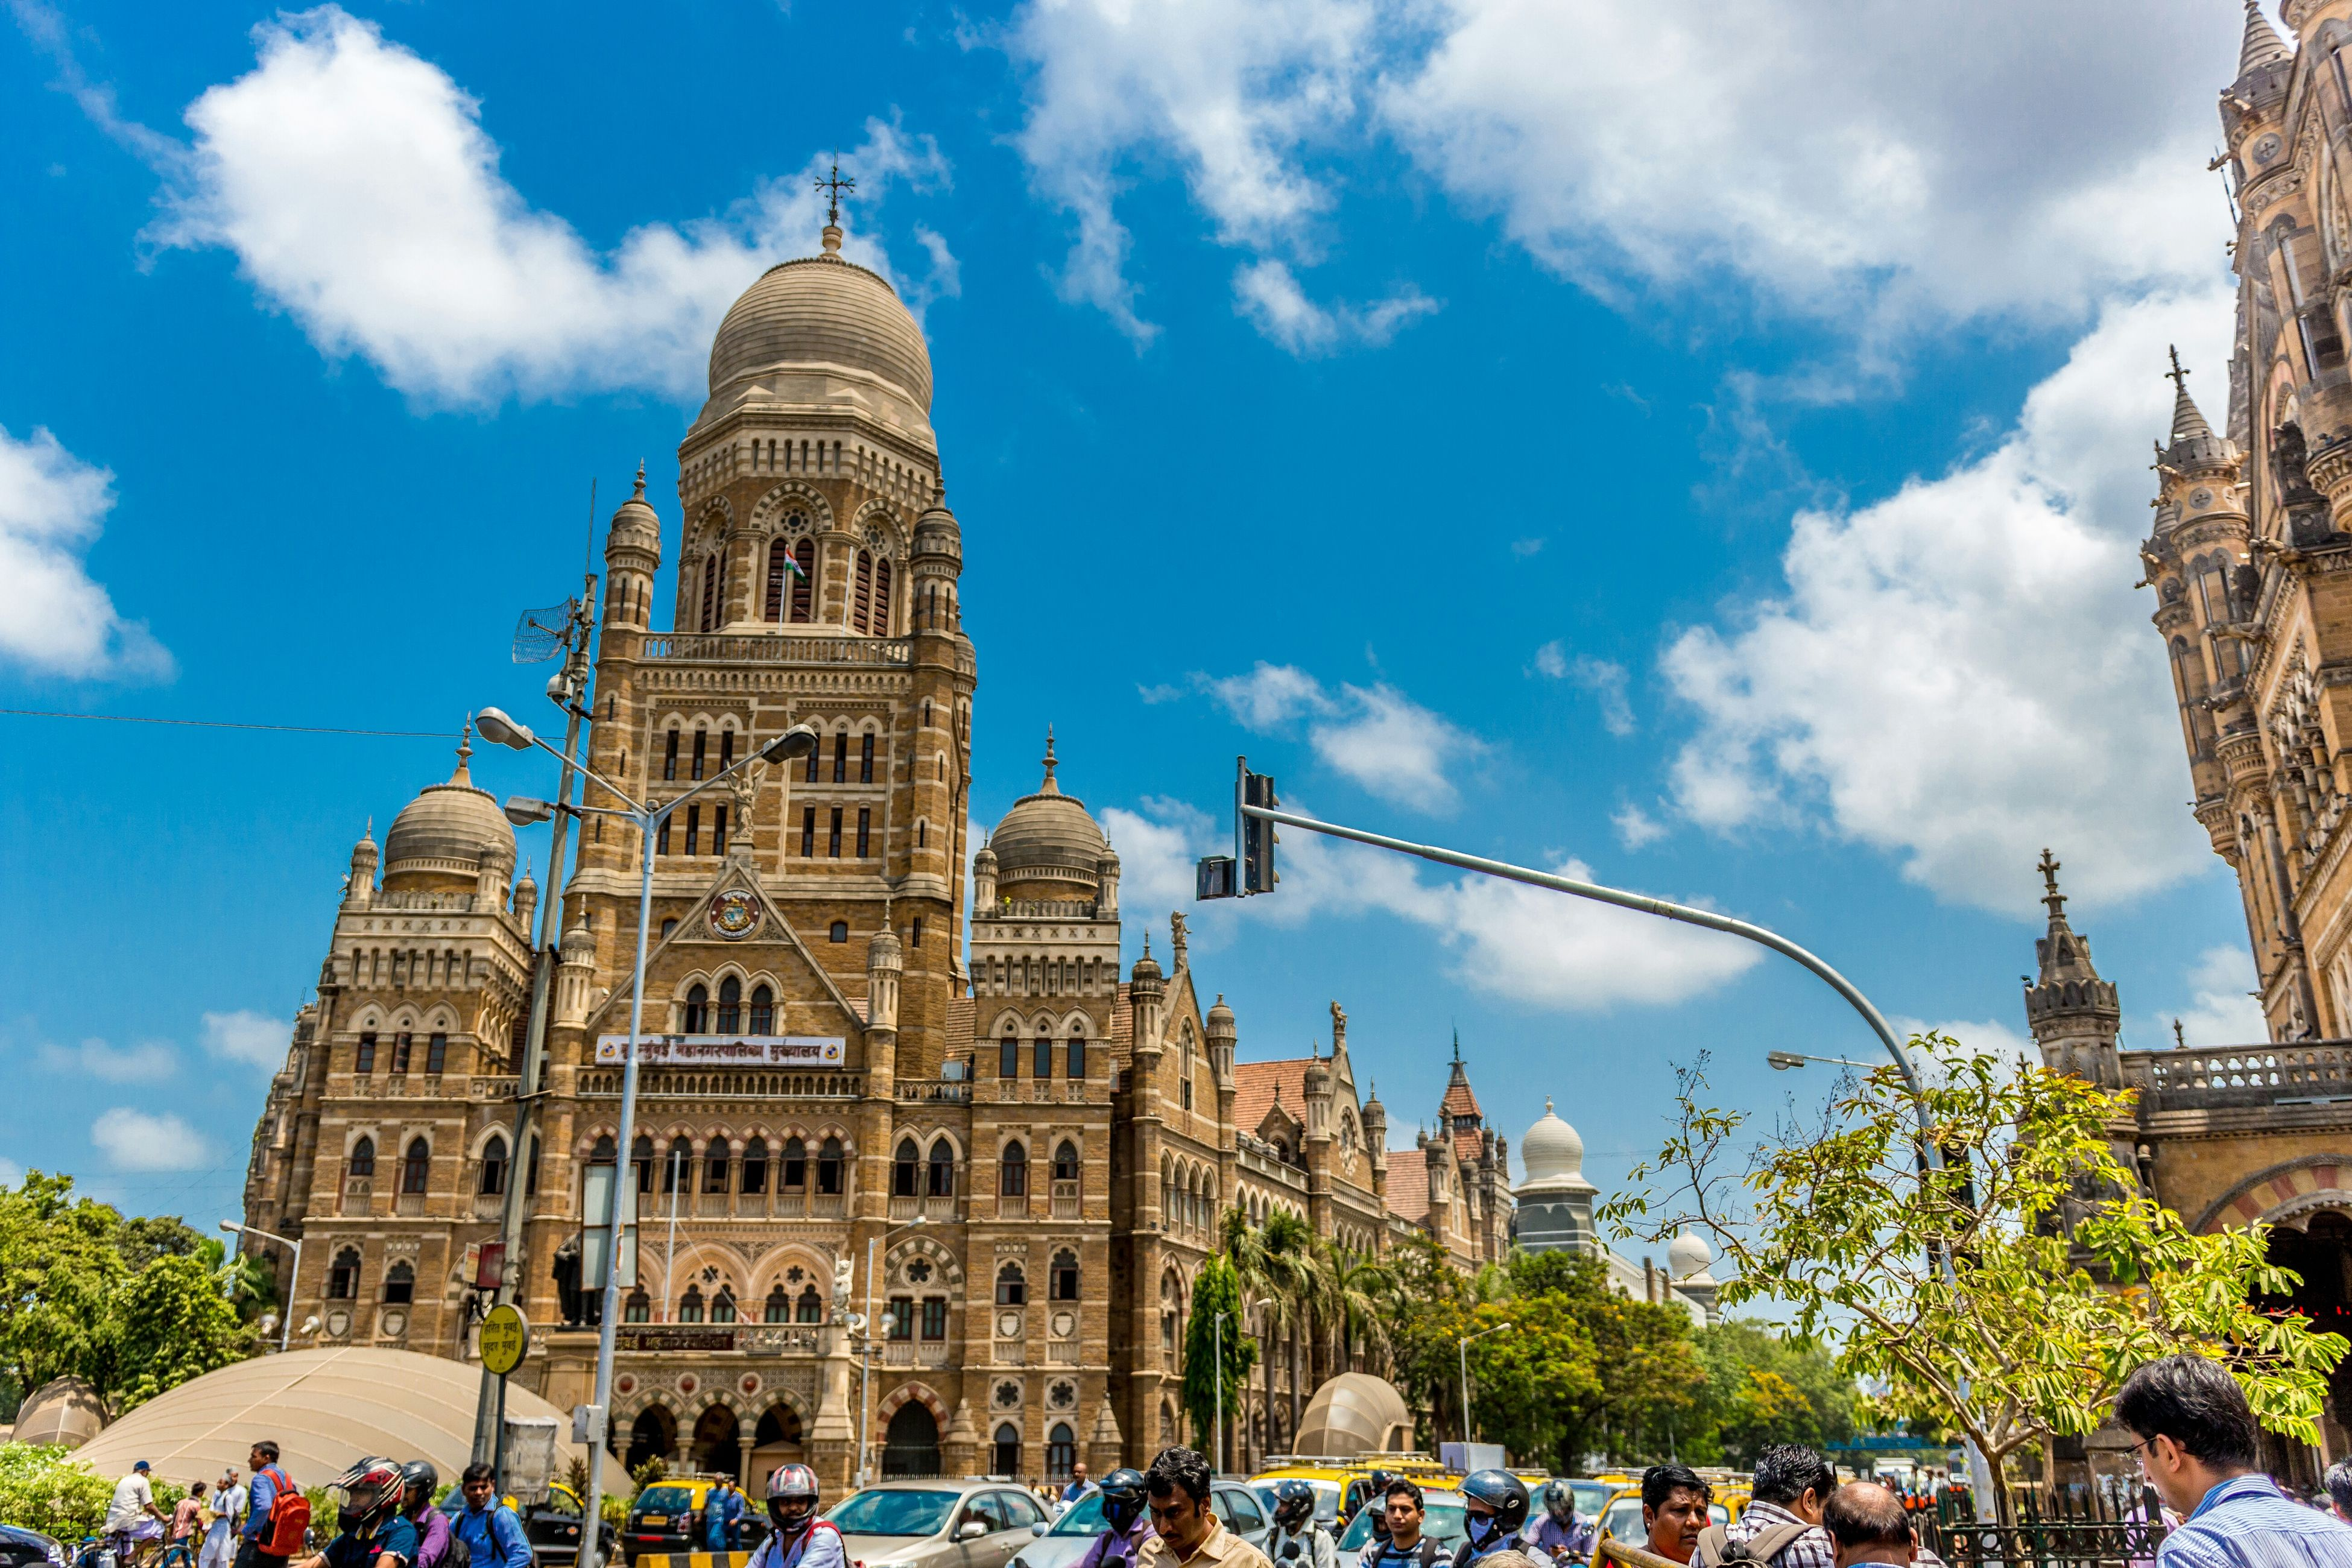 architecture, building exterior, built structure, famous place, sky, large group of people, tourism, place of worship, travel destinations, religion, history, travel, tower, church, spirituality, person, international landmark, tourist